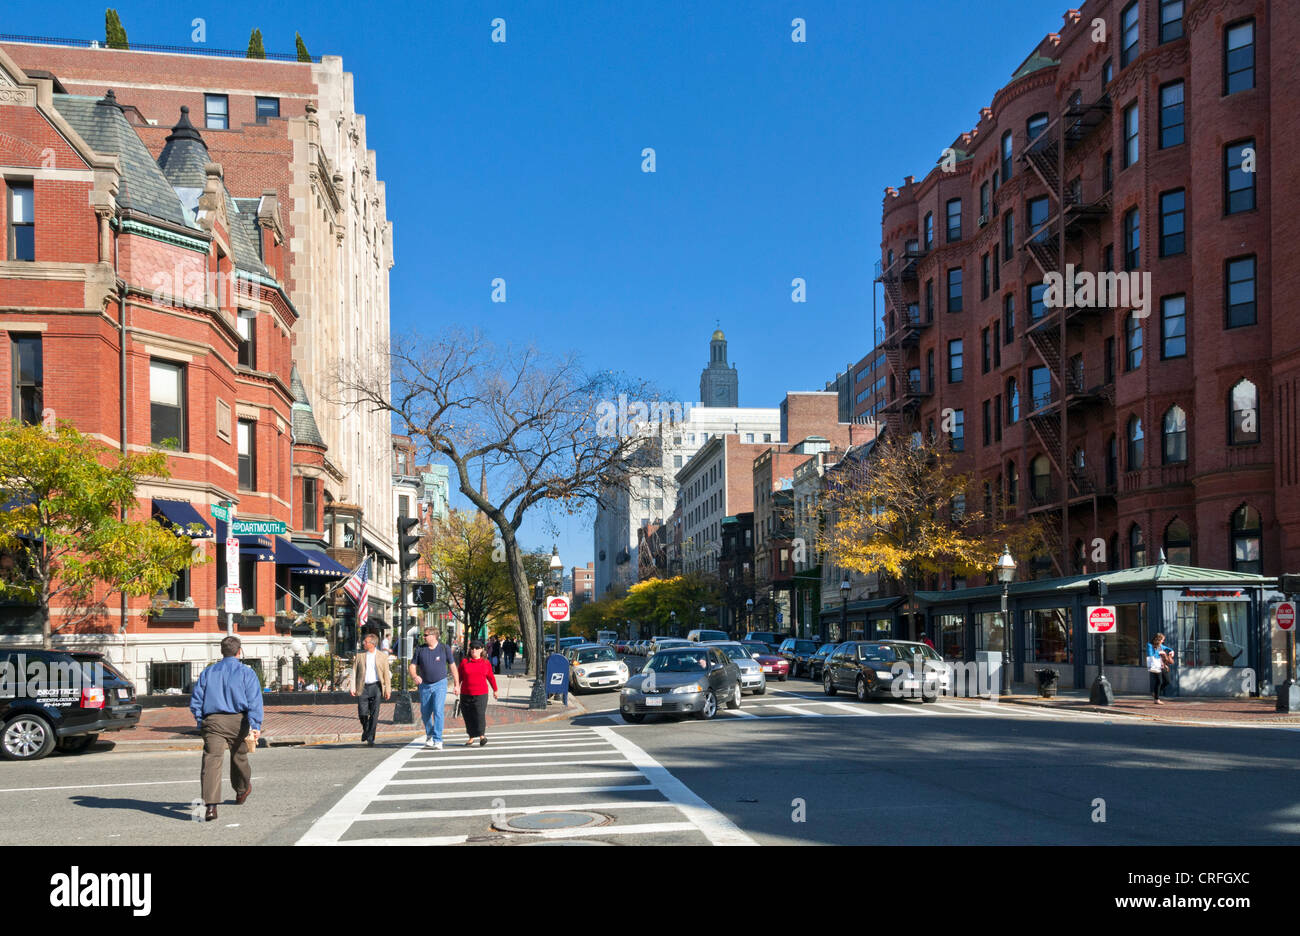 Newbury Street, Boston, Massachusetts, EE.UU. Imagen De Stock